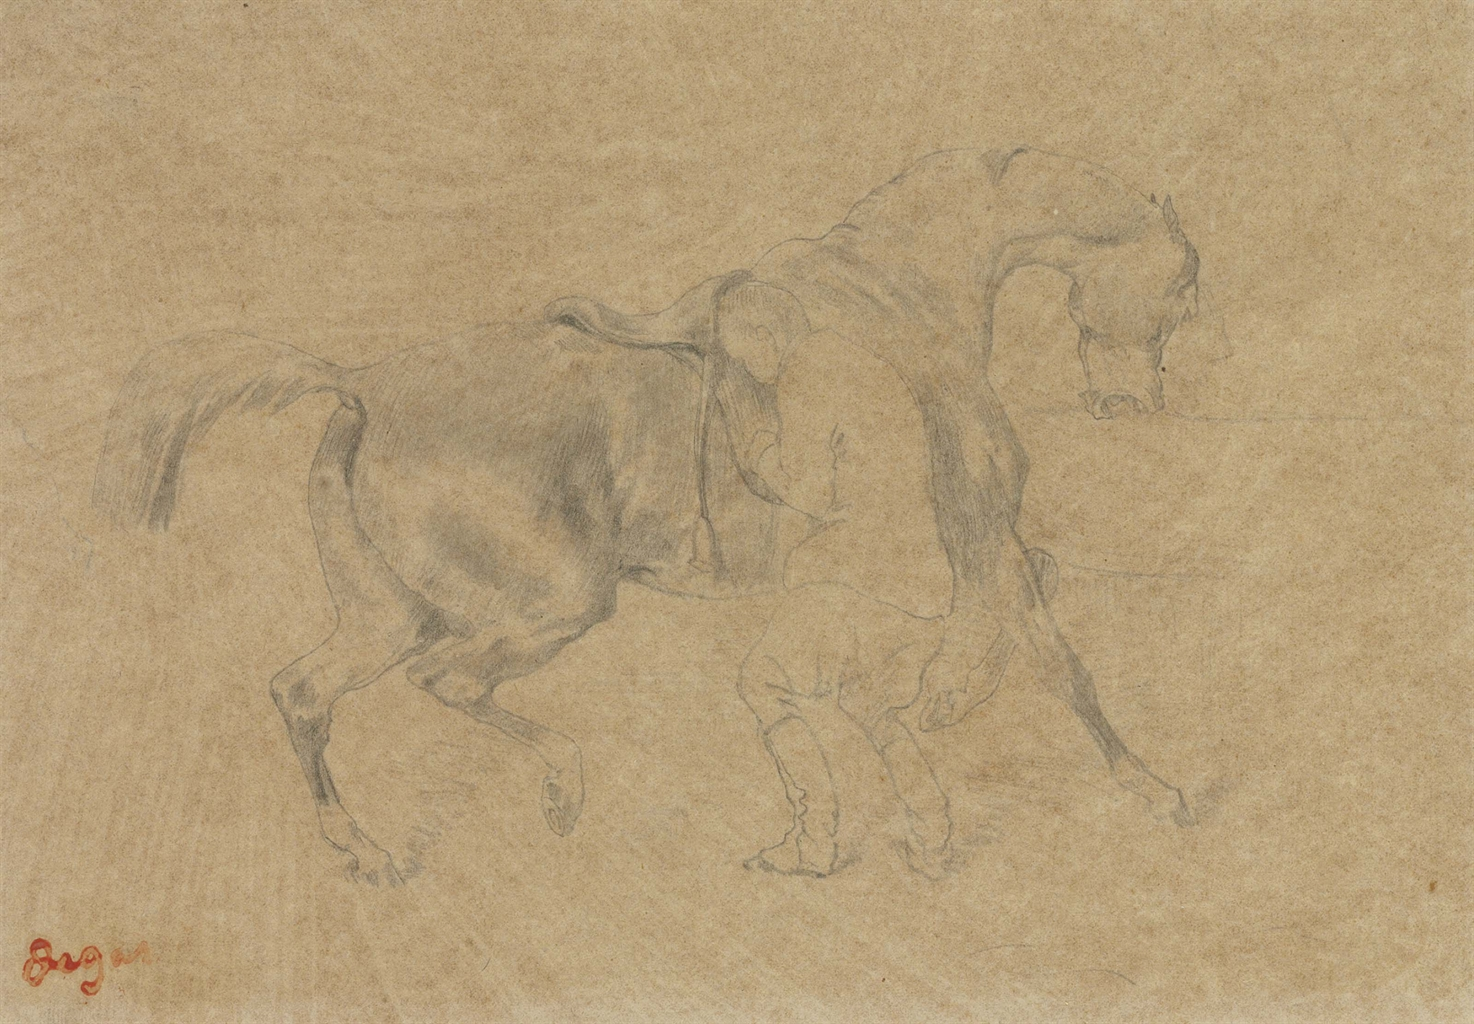 Edgar Degas (1834-1917), Chevalier. Pencil on tracing paper laid down on paper laid down on board, 6⅝ x 9 in (17 x 23 cm). Estimate $18,000-25,000. This lot is offered in Impressionist & Modern Art Works on Paper on 16 May 2017, at Christie's in New York